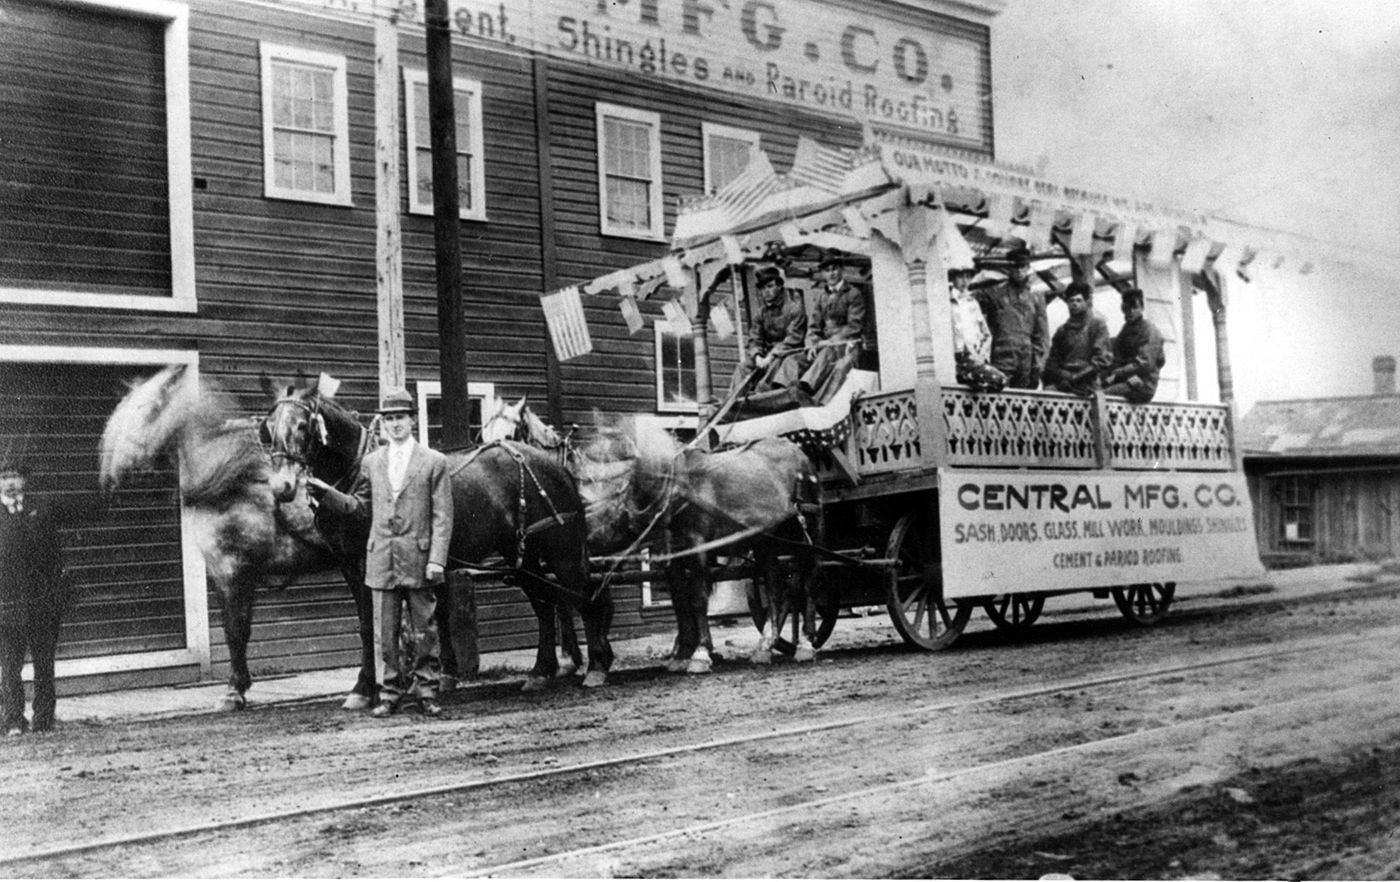 Central Manufacturing Co Celebrated July 4 1914 In Front Of The Building Housing Its Operation It Burned Down In 1 Vancouver Washington Vancouver Historical